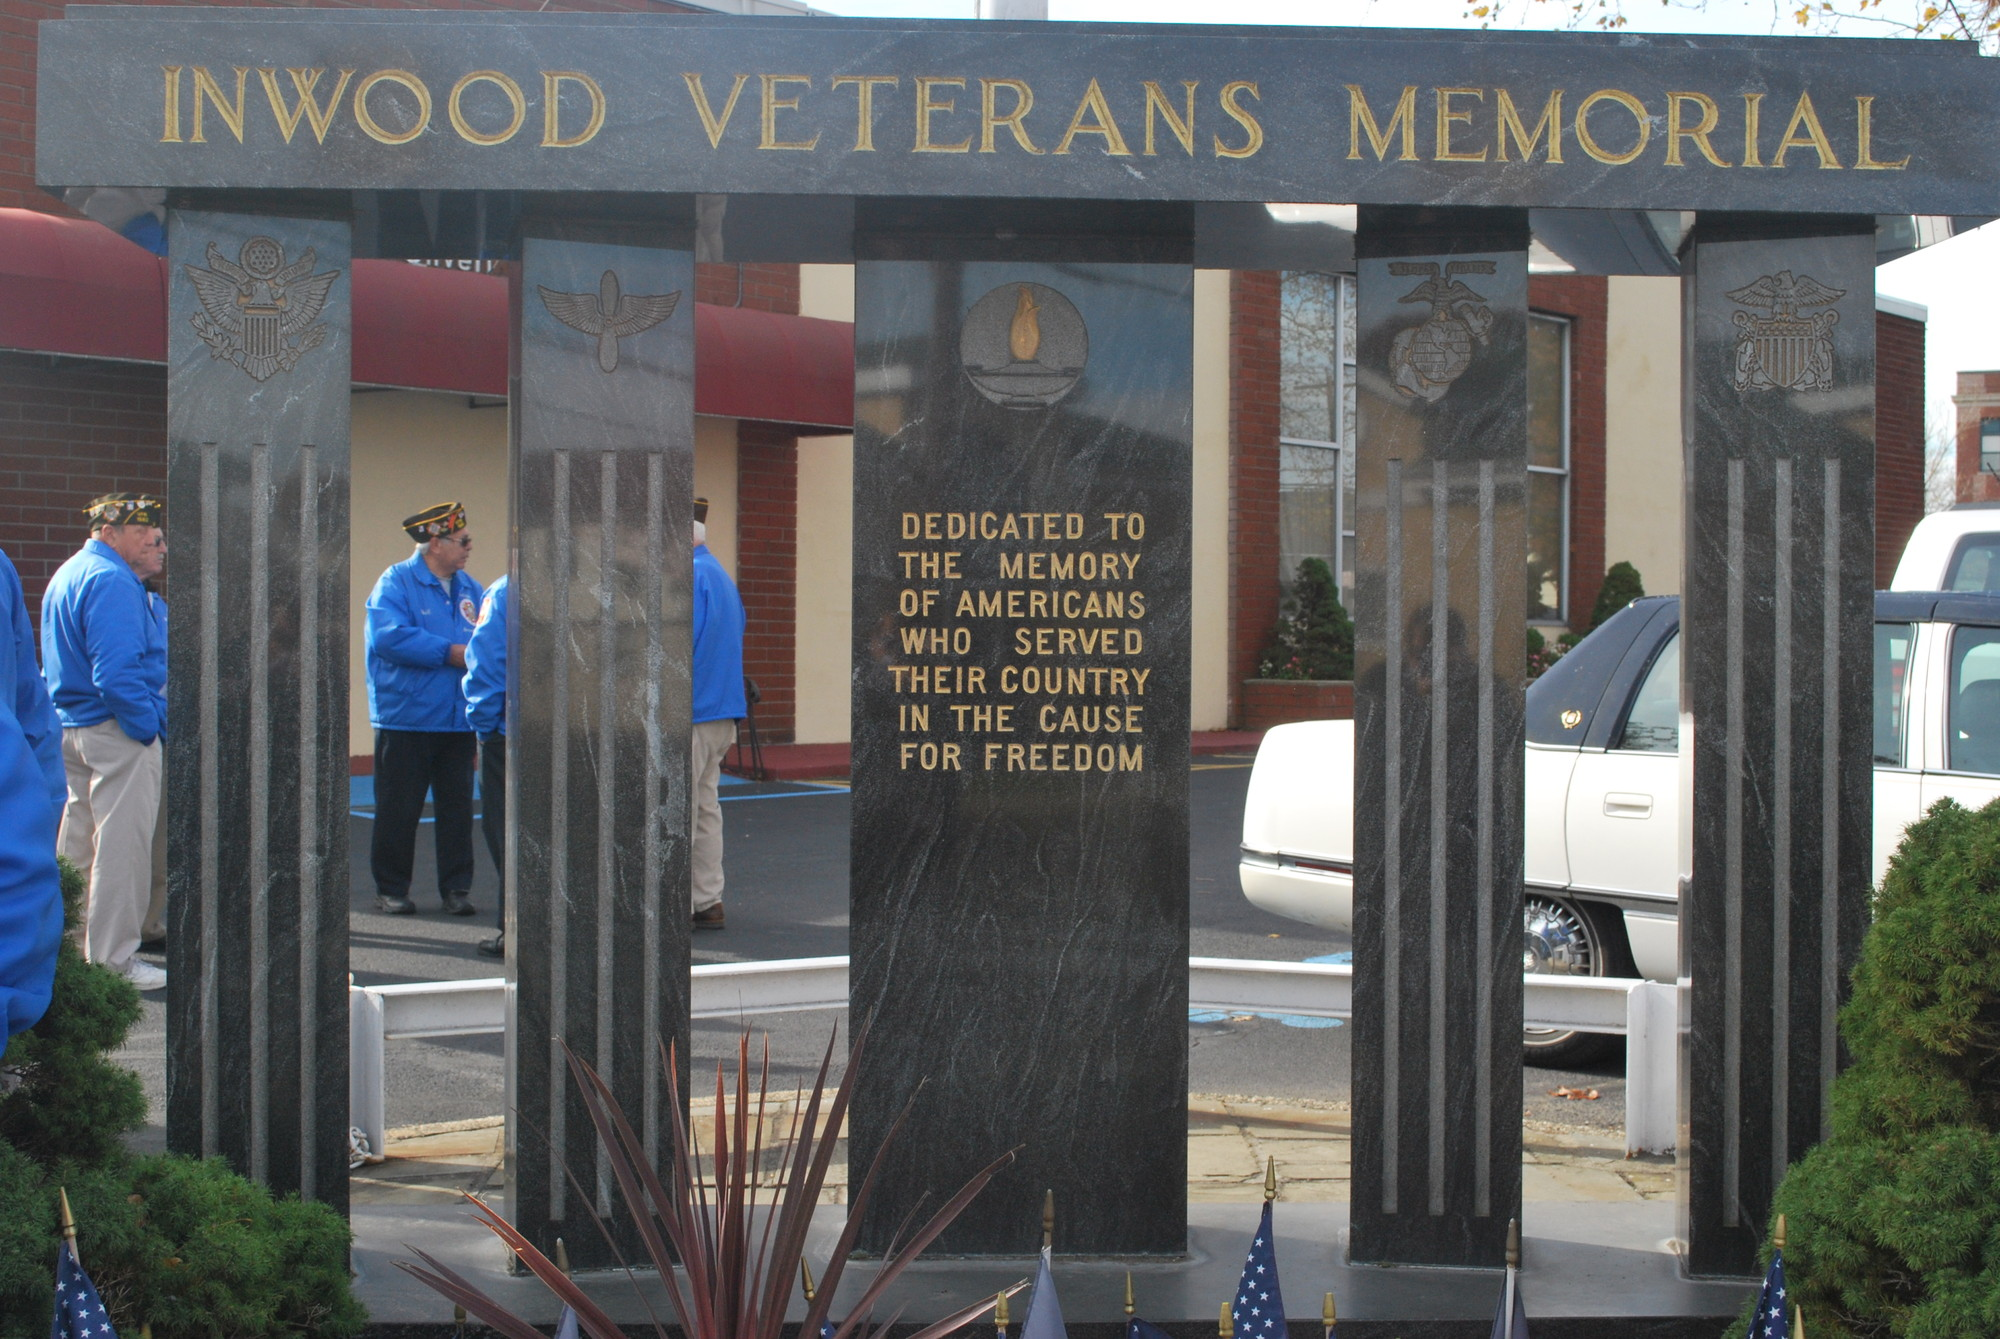 Post 1582's monument dedicated to the memory of those who served in the U.S. military.